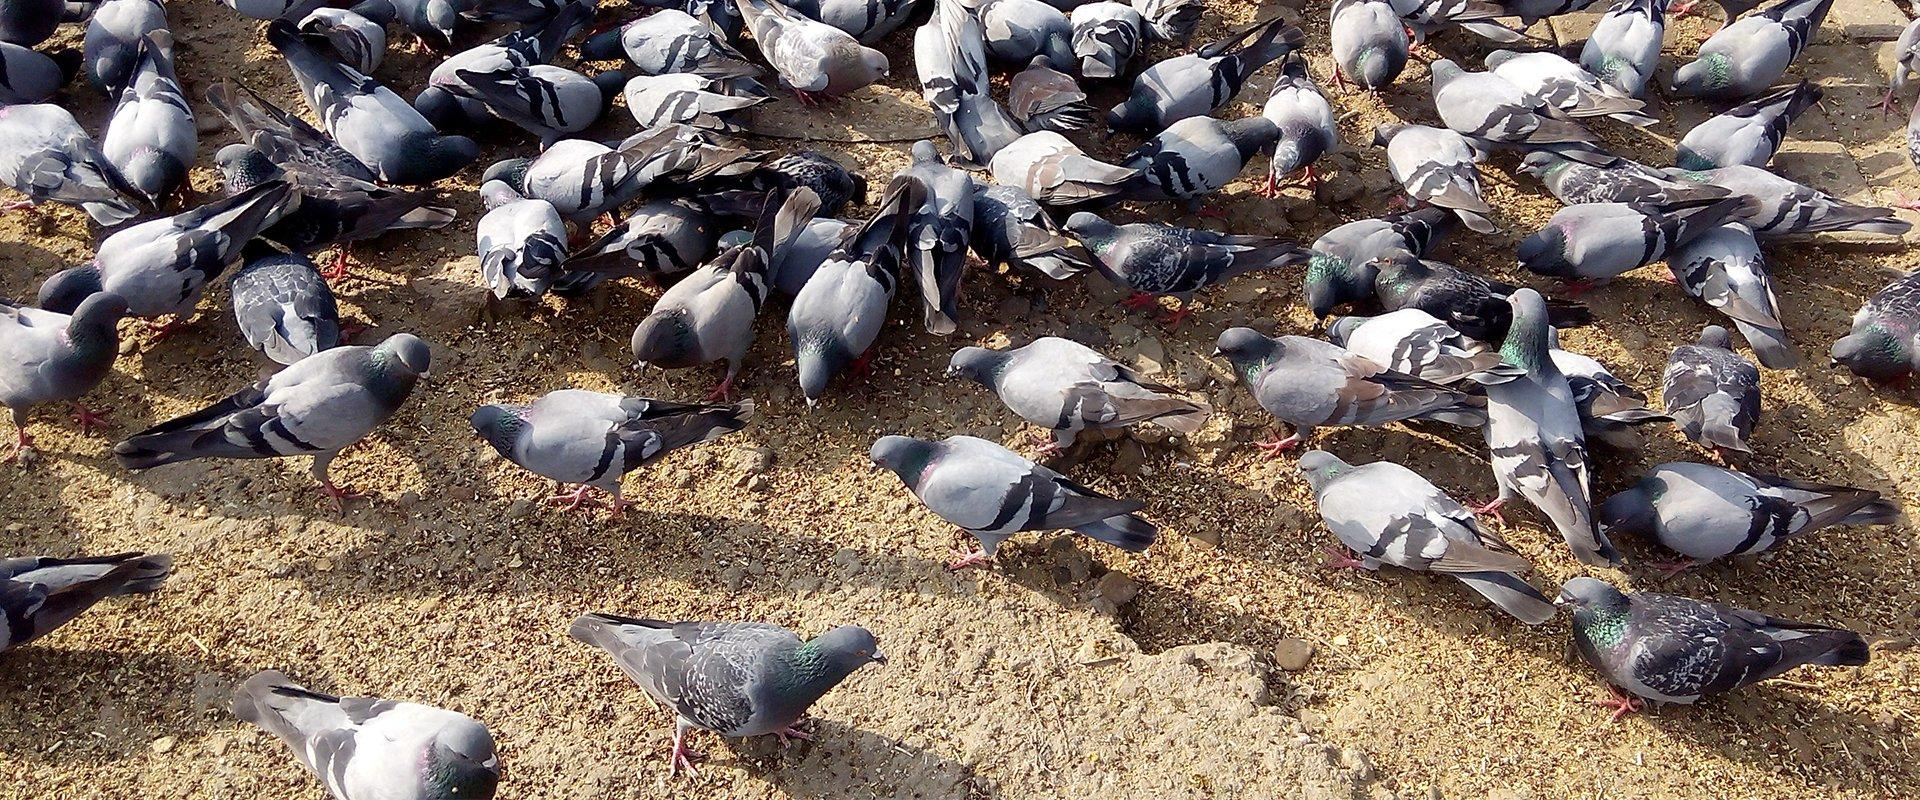 a large gathering of pigeons